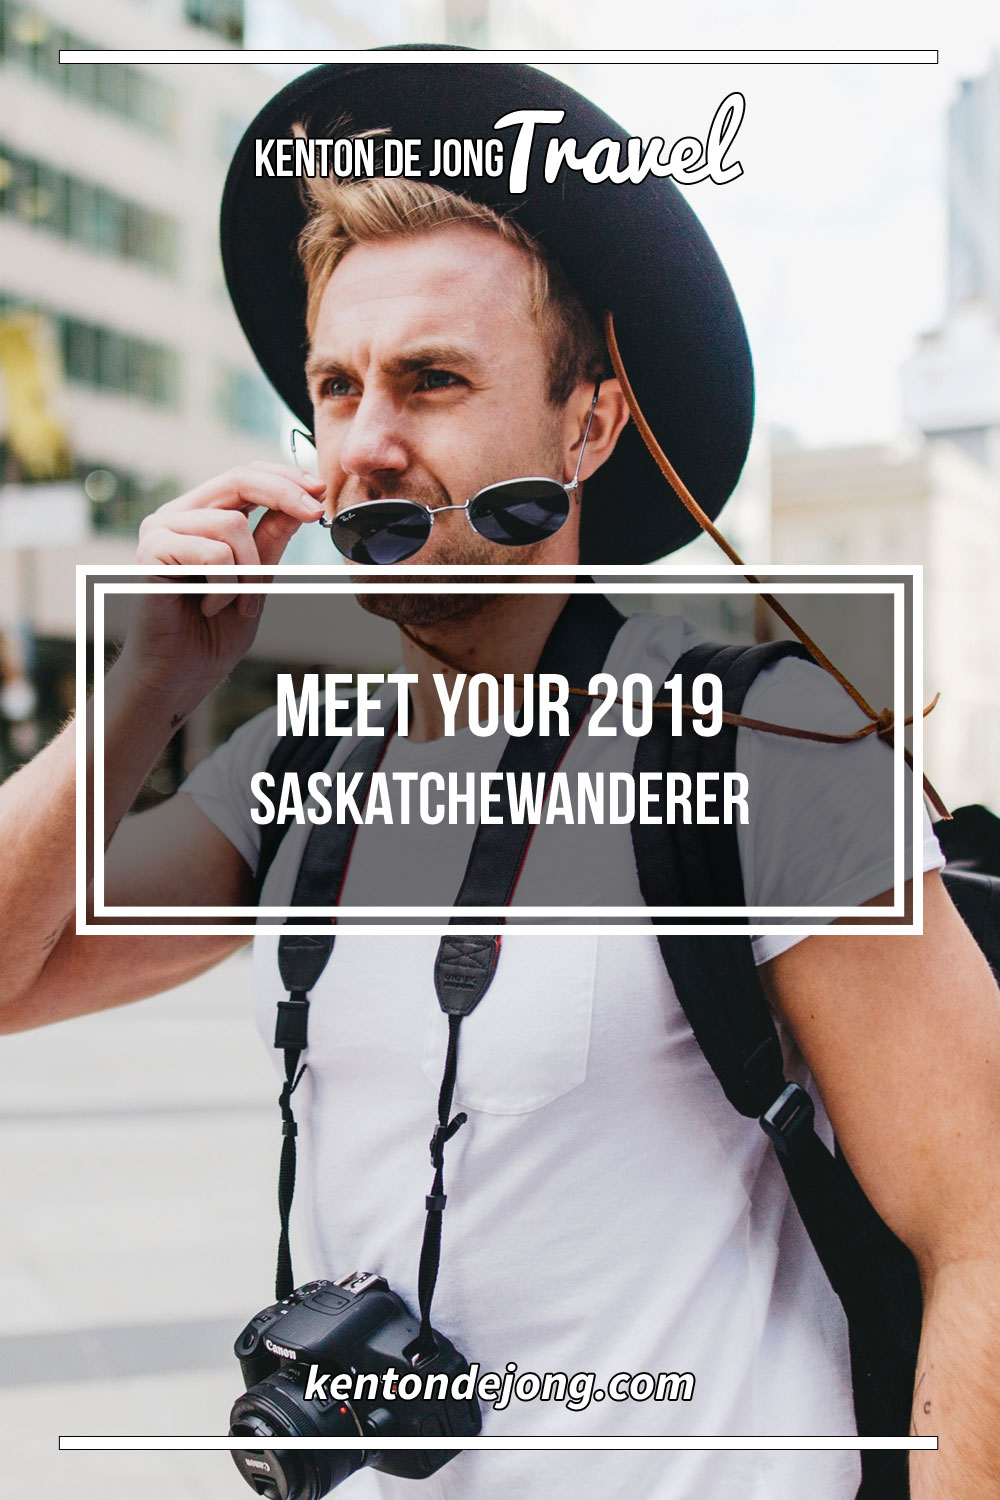 Meet Your 2019 Saskatchewanderer